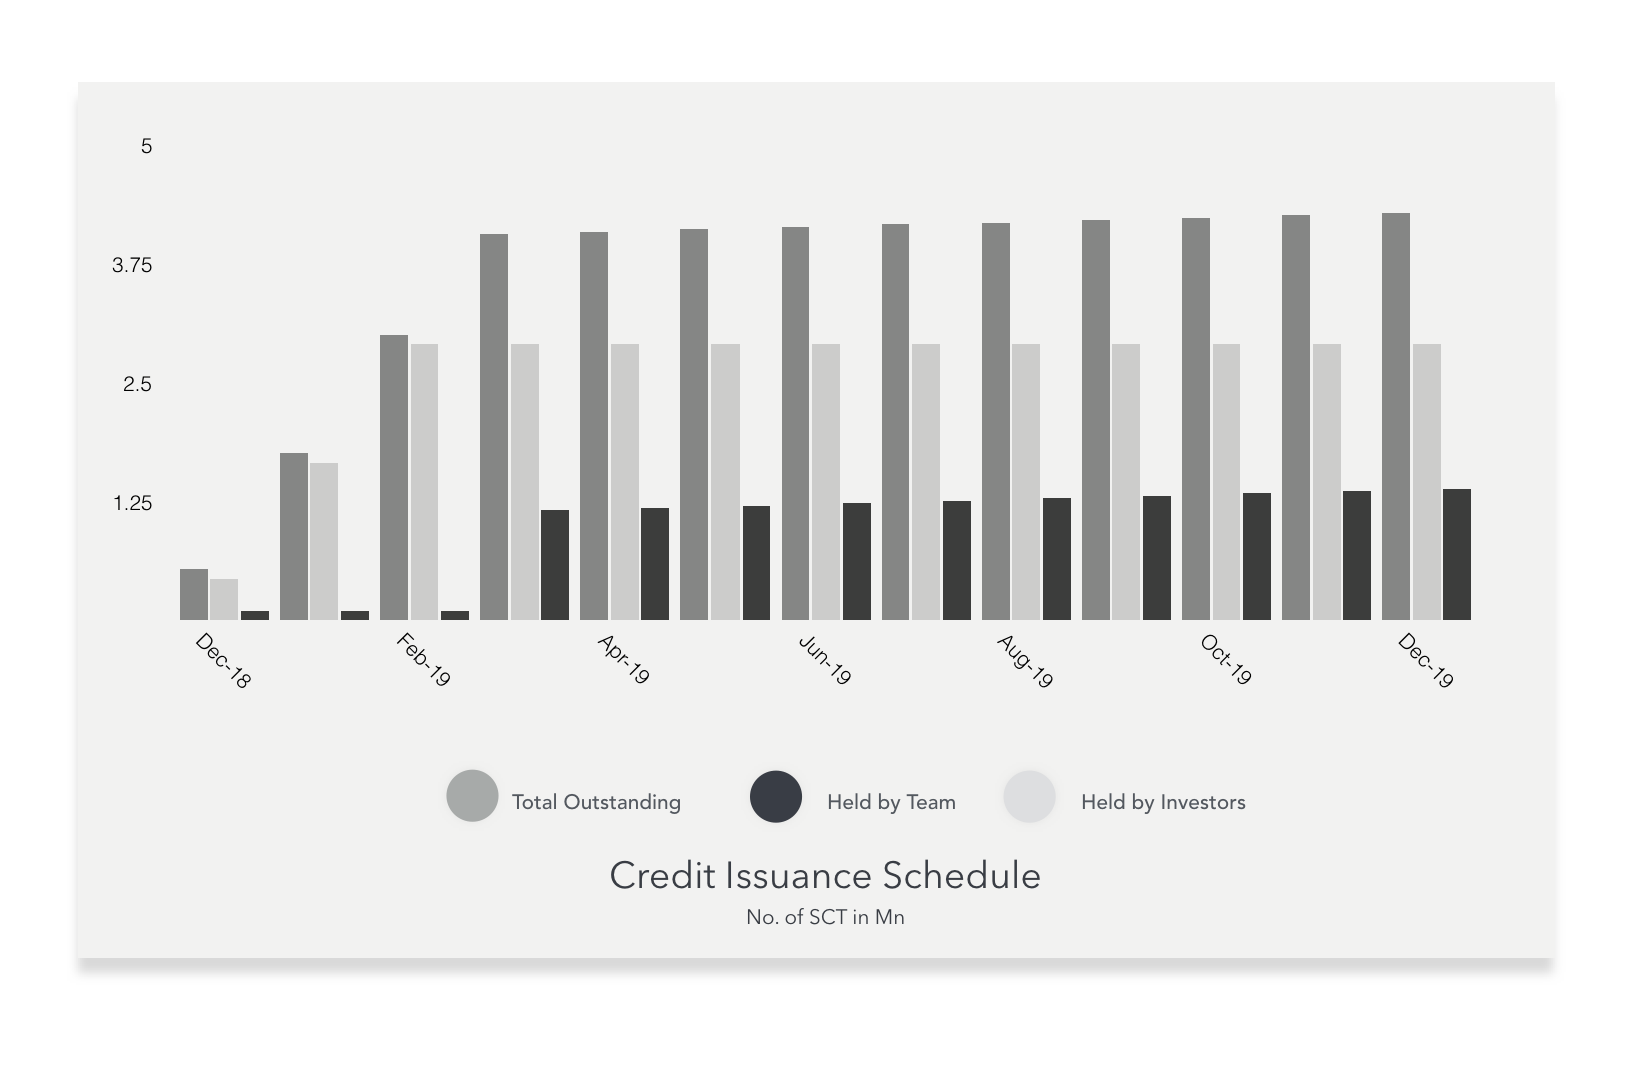 Credit Issuance Schedule 2.png